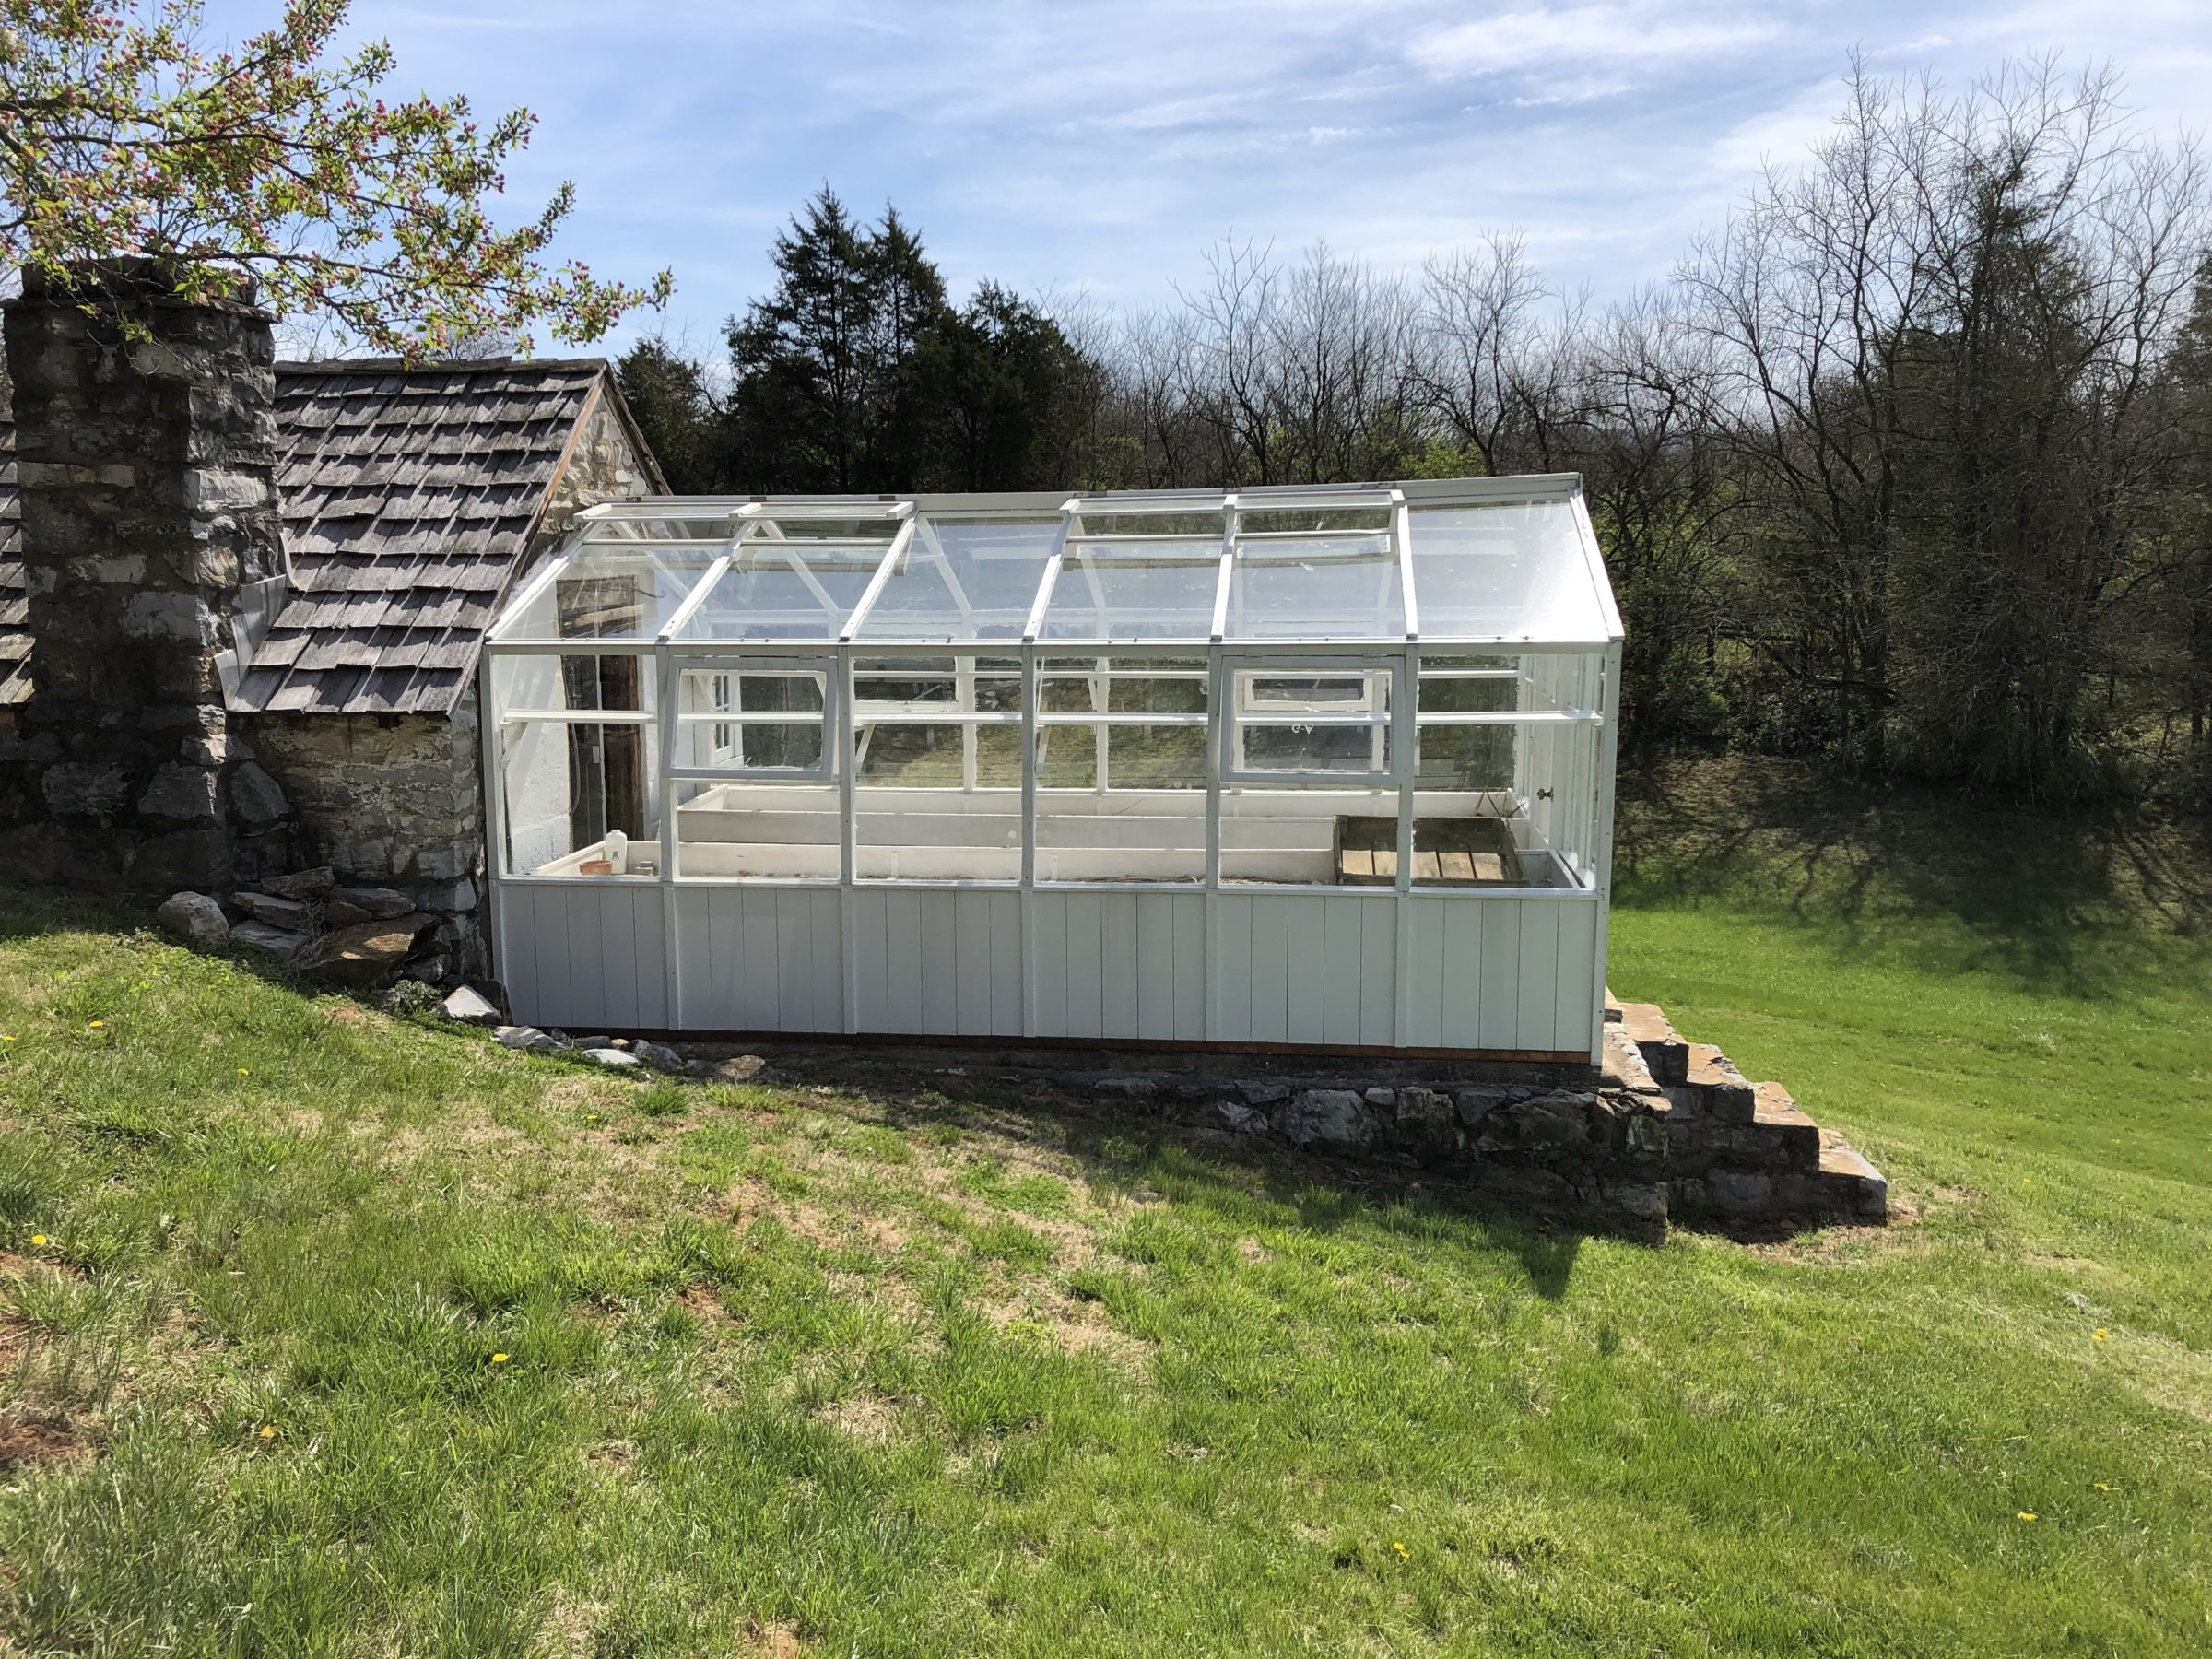 greenhouse, historic greenhouse, old greenhouse, vintage greenhouse, glass greenhouse, restoration, preservation, greenhouse restoration, greenhouse preservation, renovation, greenhouse renovation